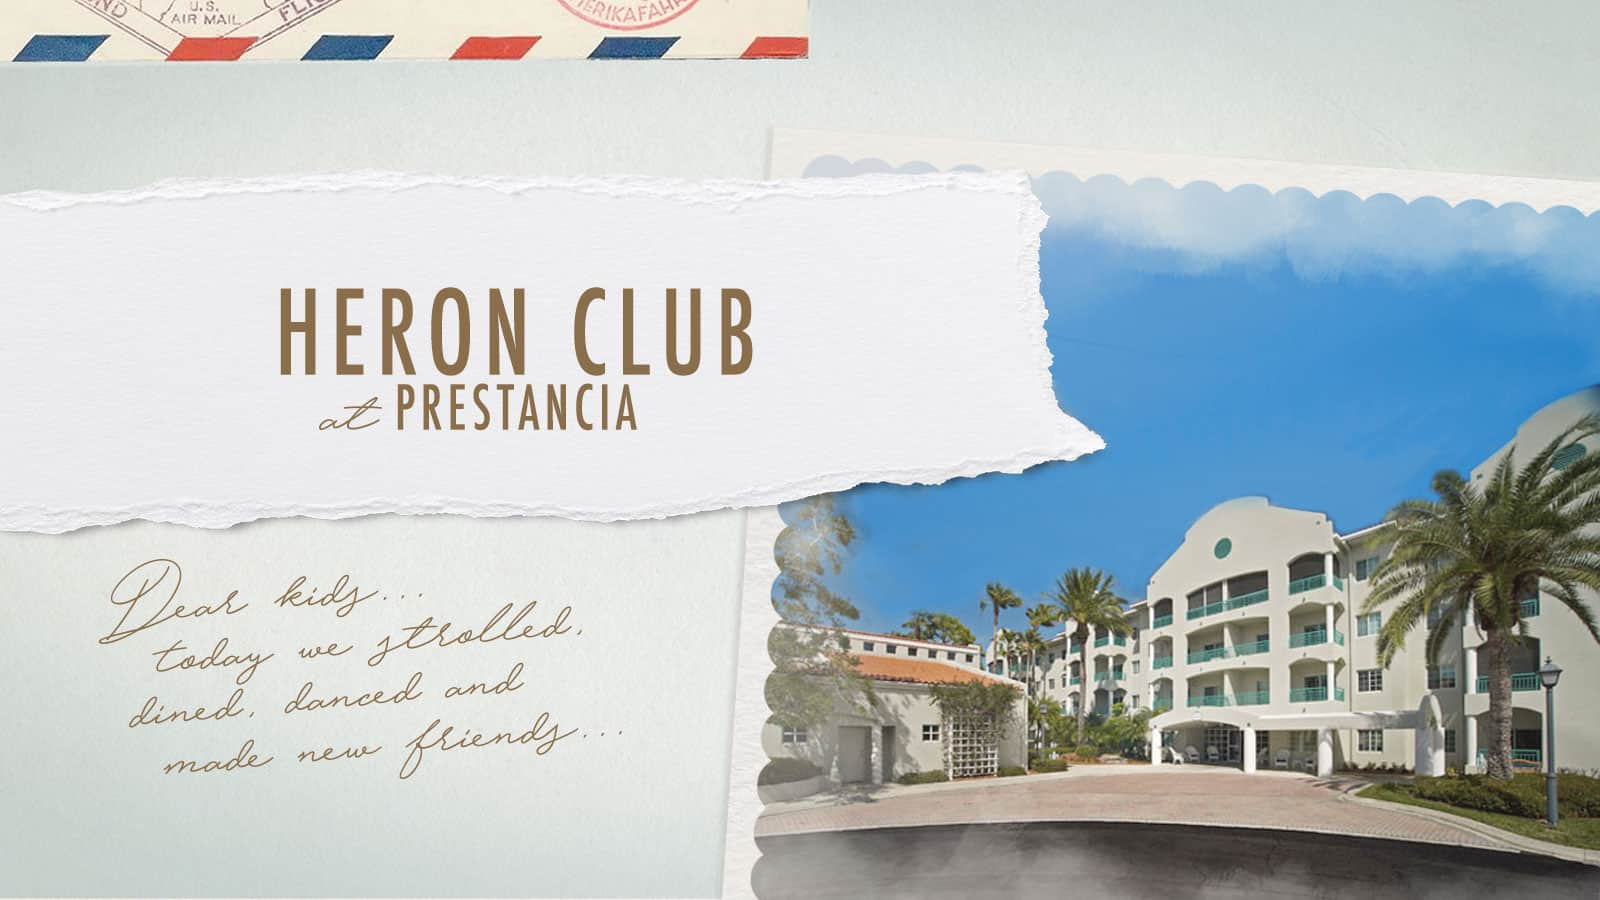 Heron Club at Prestancia